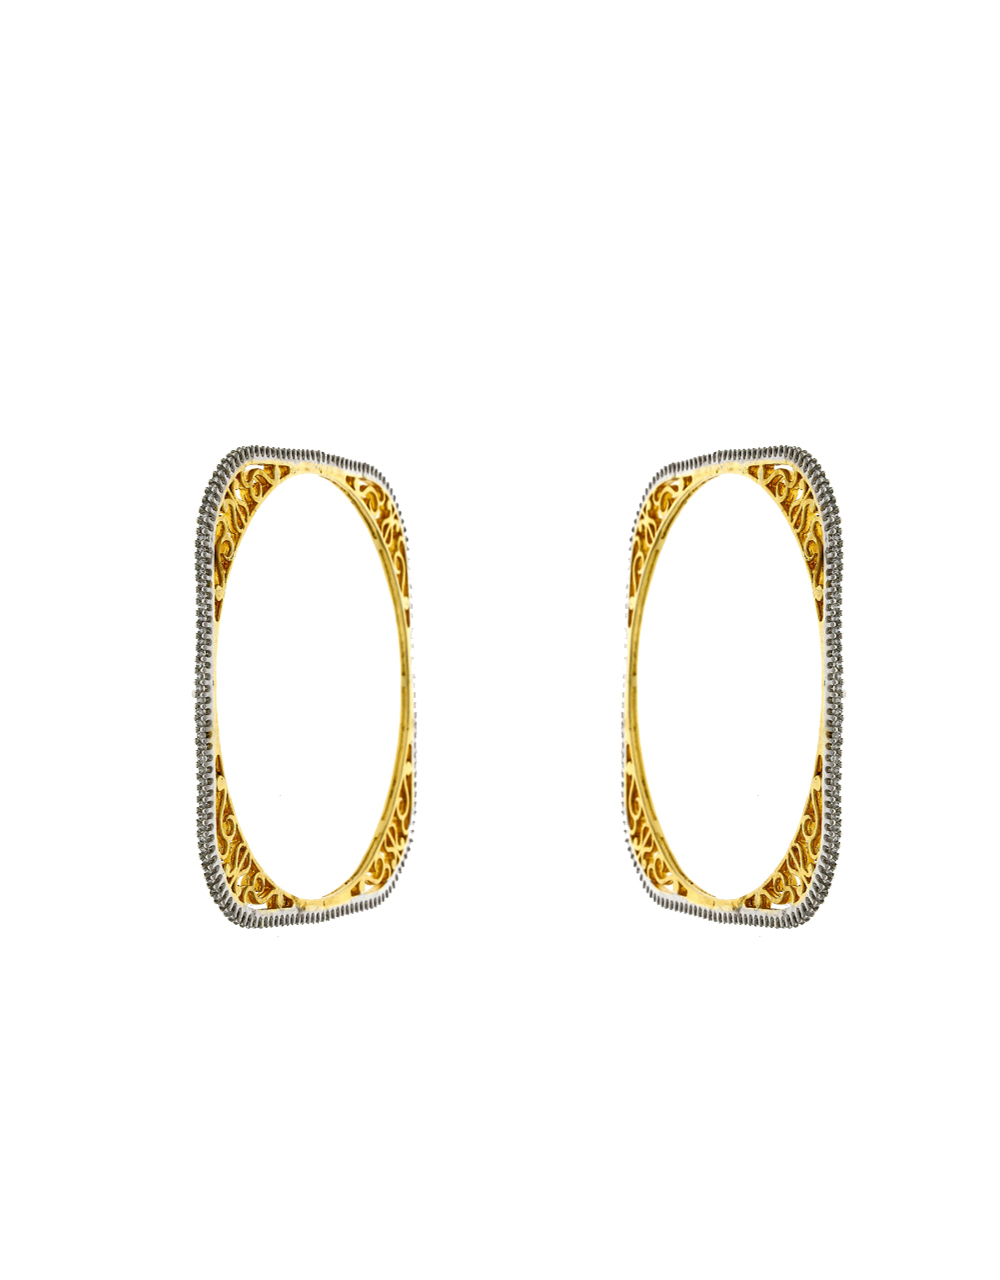 Dazlling White Stones Studded With Square Pattern Bangles.